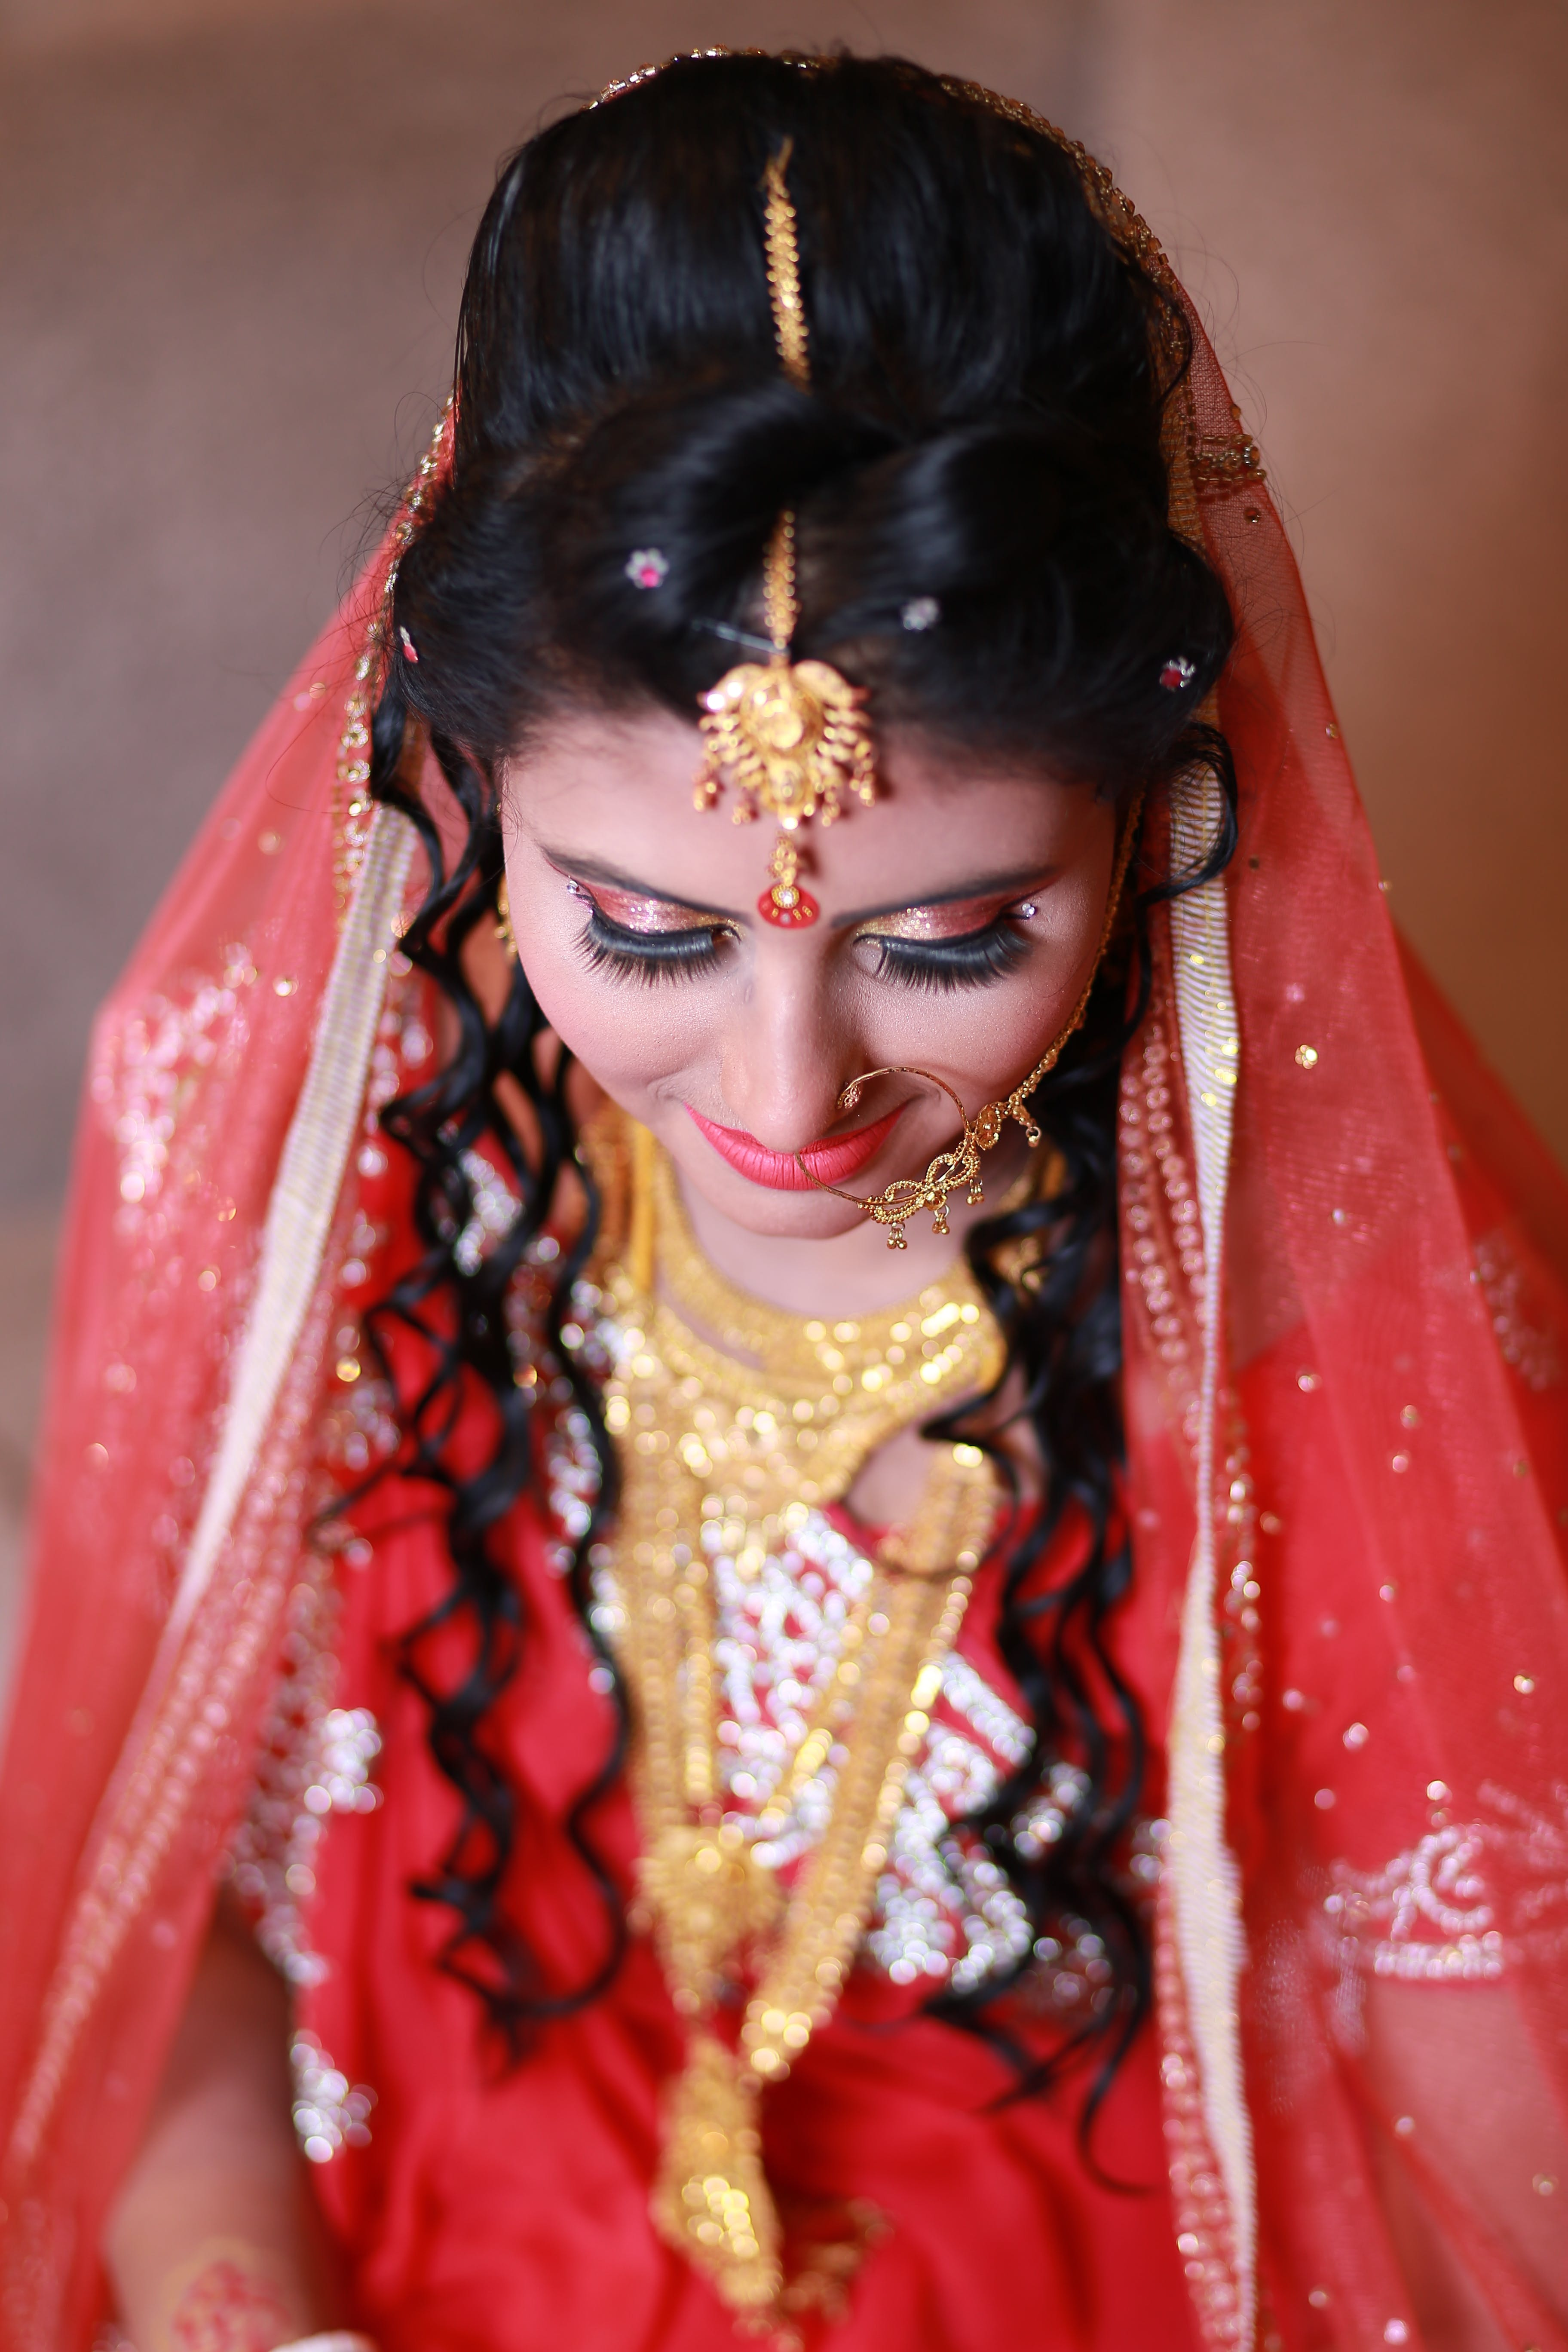 Selective Focus Photography of Woman Wearing Traditional Dress